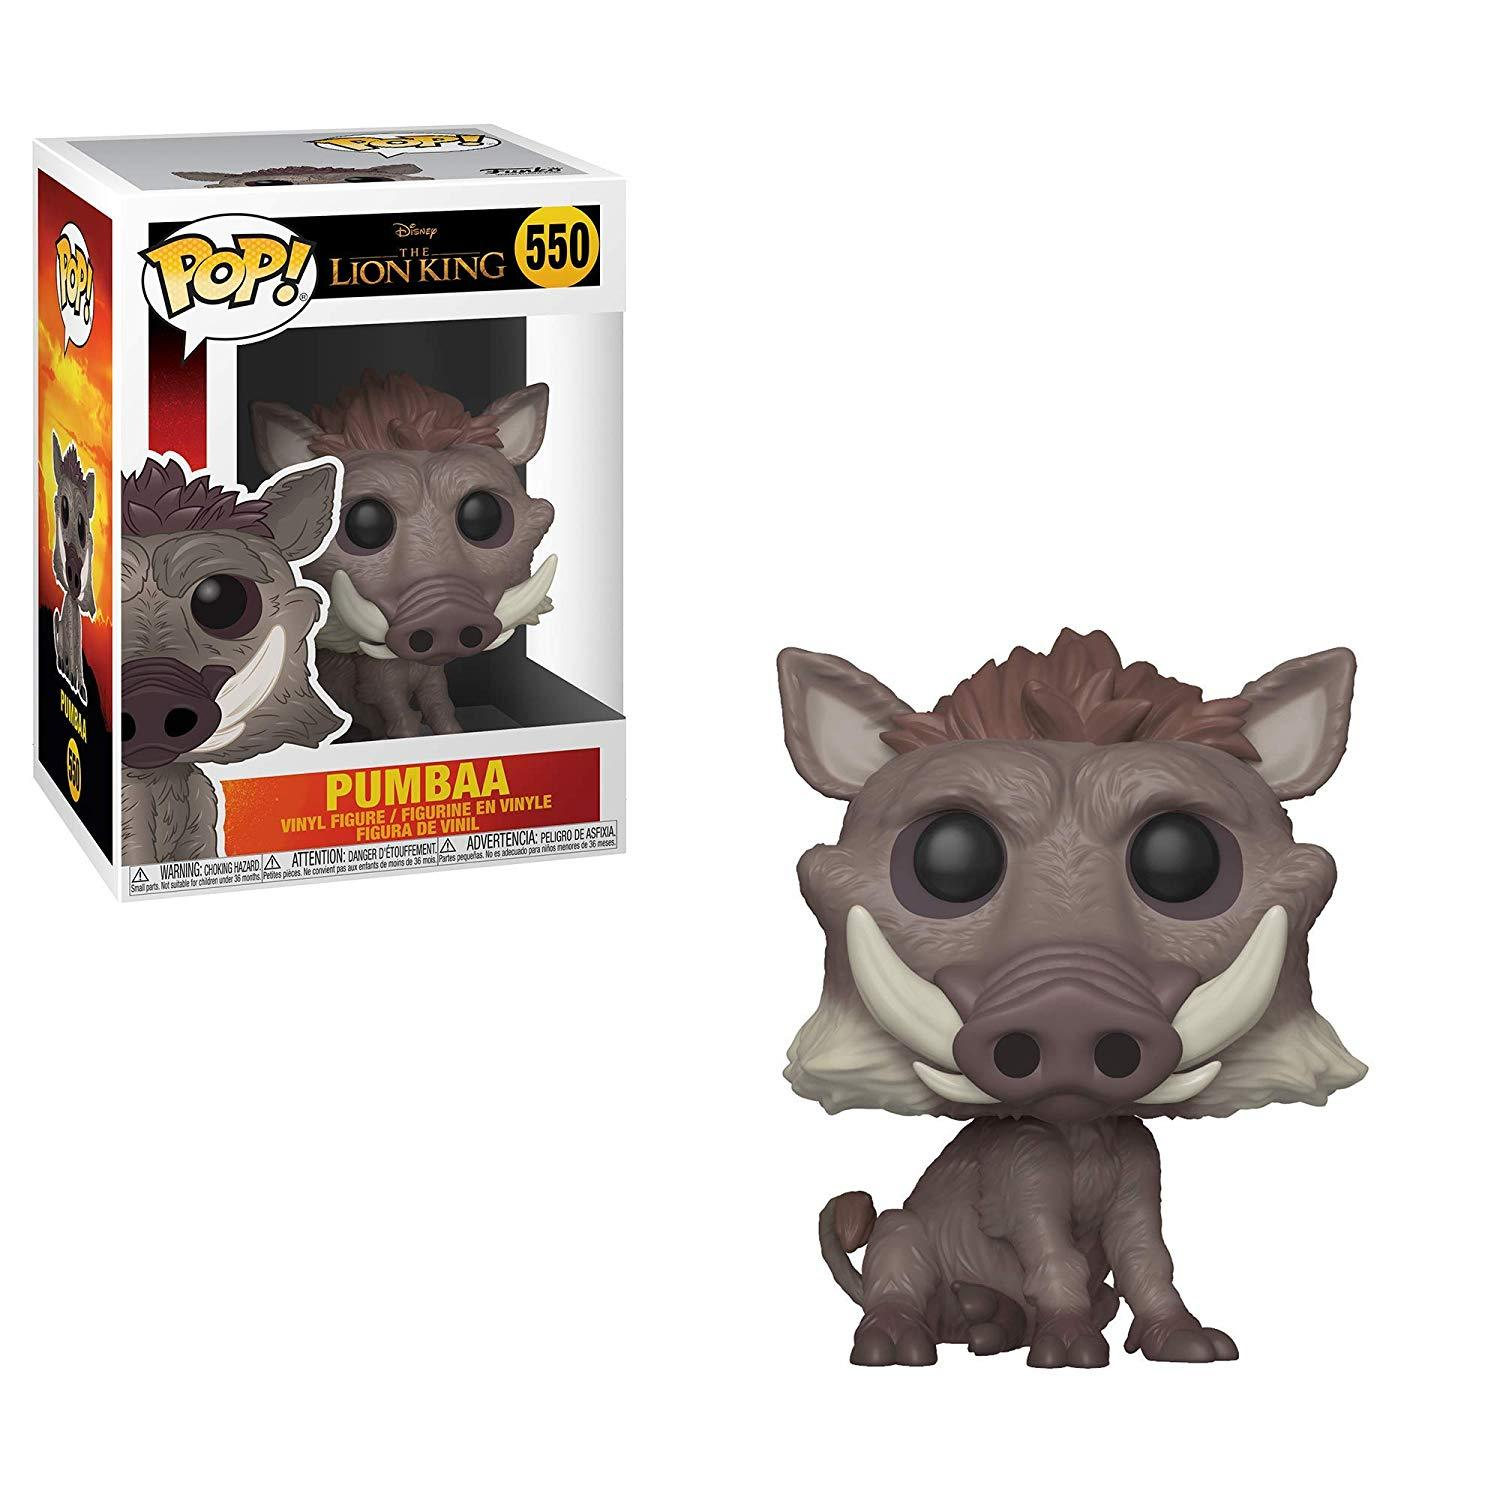 LION KING, THE -  POP! VINYL FIGURE OF PUMBAA (4 INCH) 550